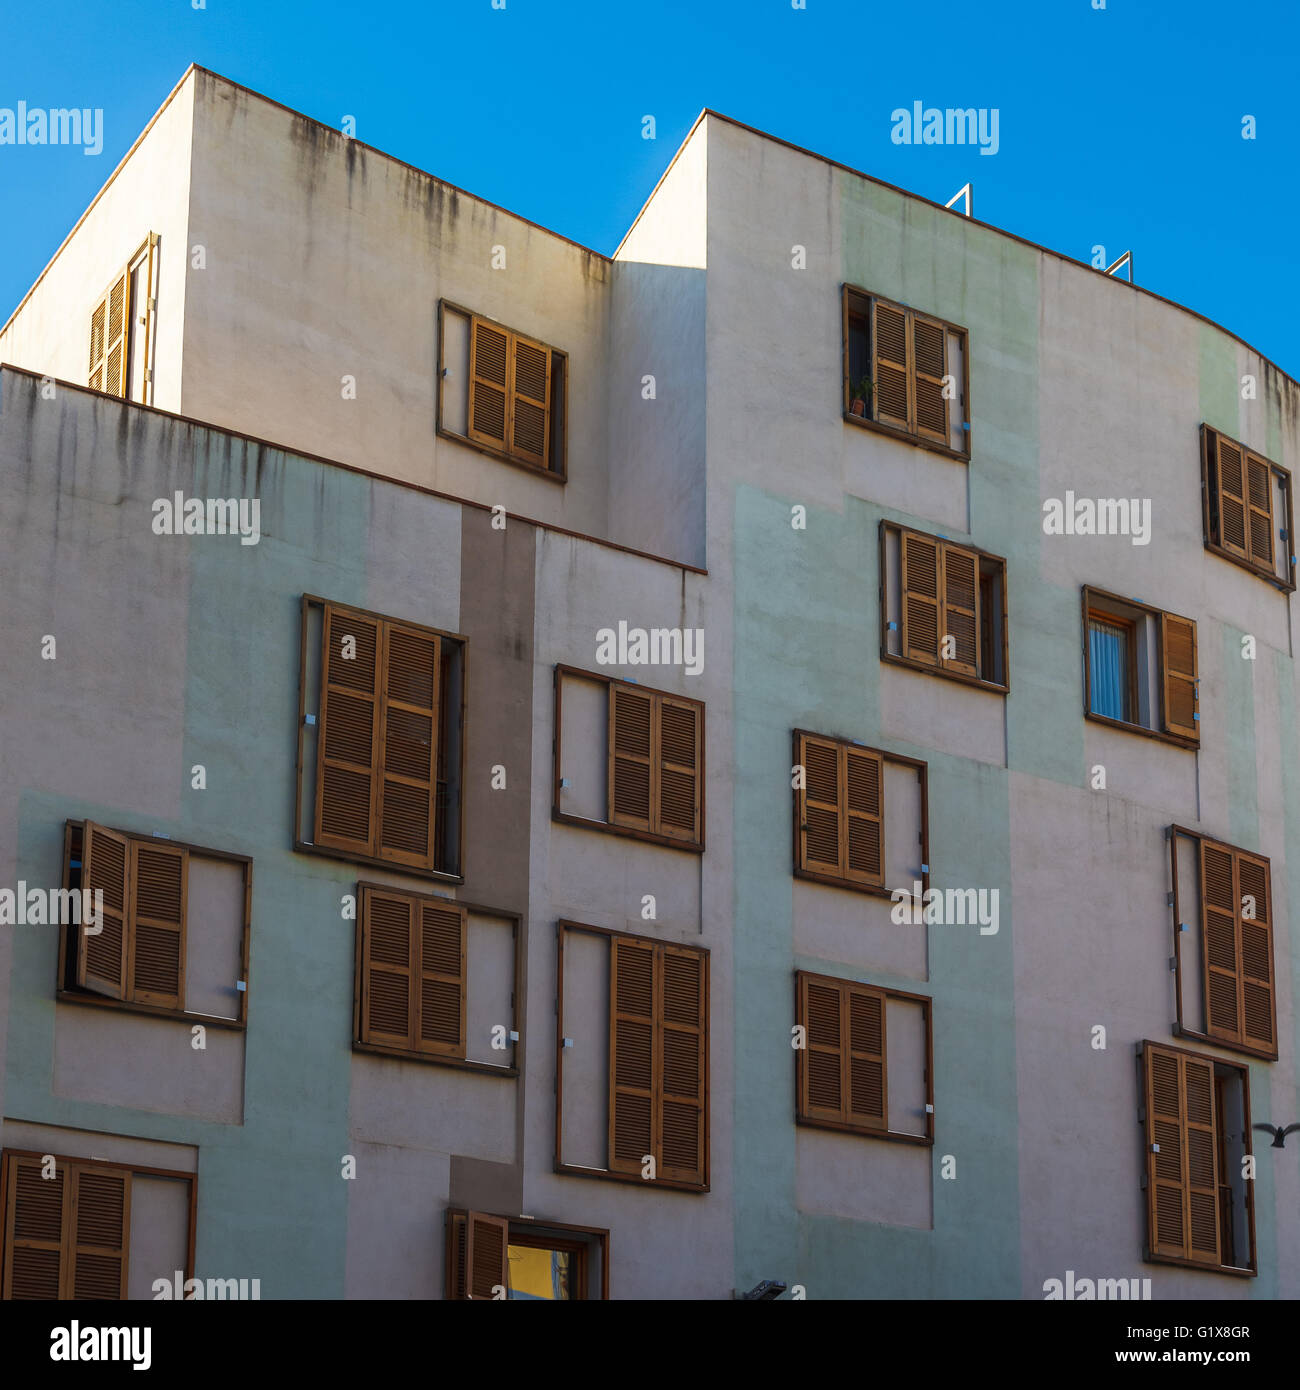 Many Windows on residential building, Barcelona, Spain Stock Photo